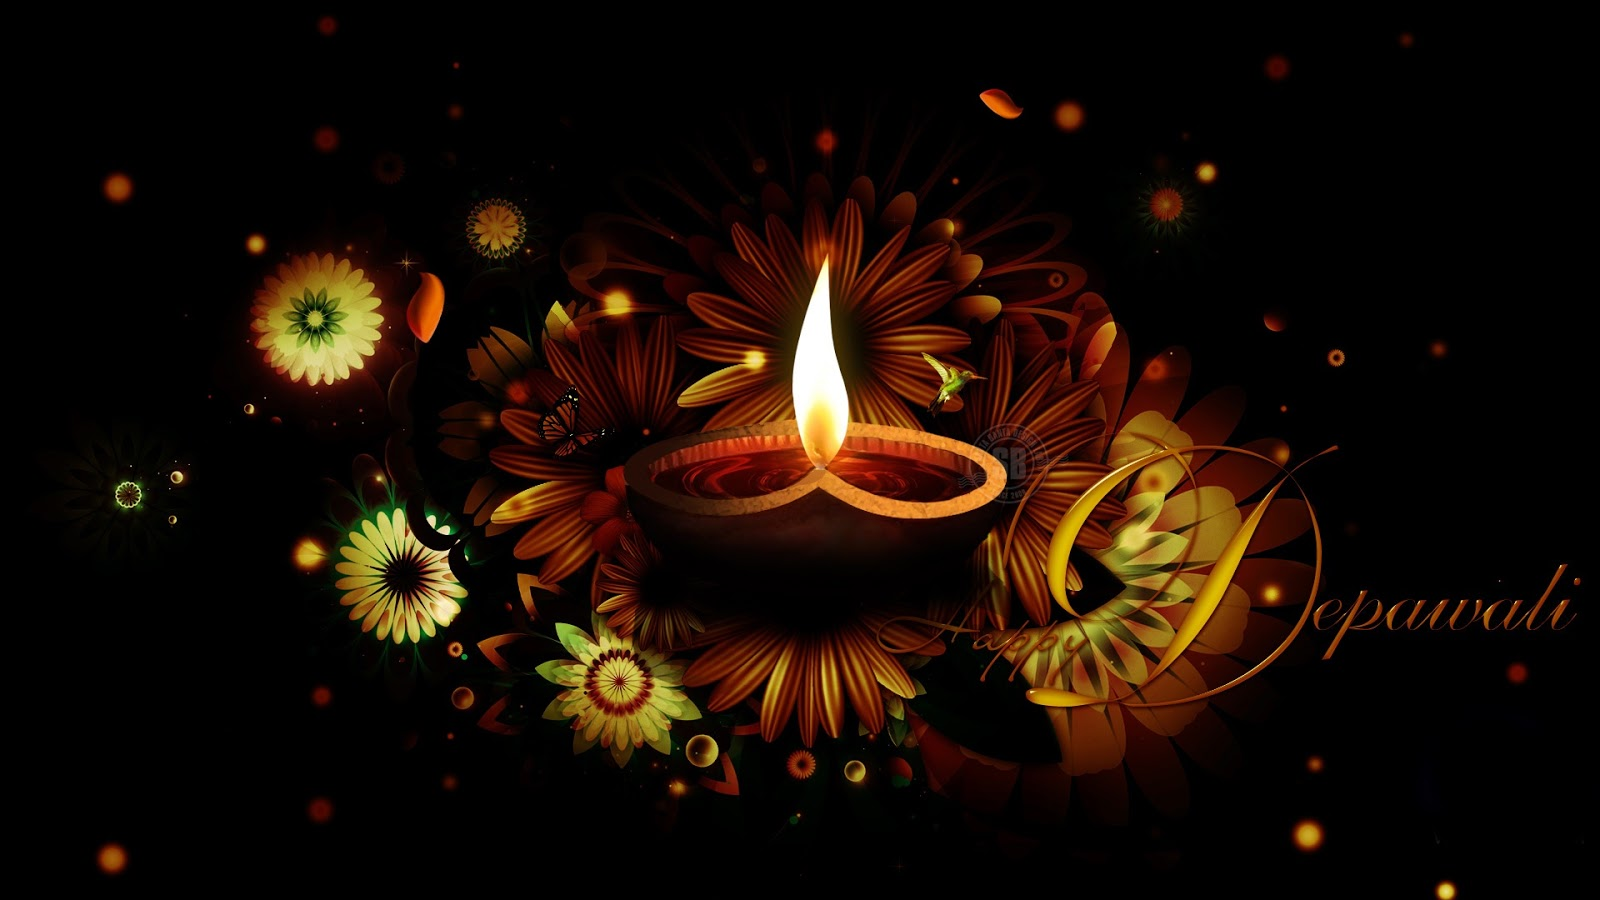 Download Diwali Hd Wallpapers 2016: {*Latest} Diwali Images 2016 Download, Deepavali Wallpaper